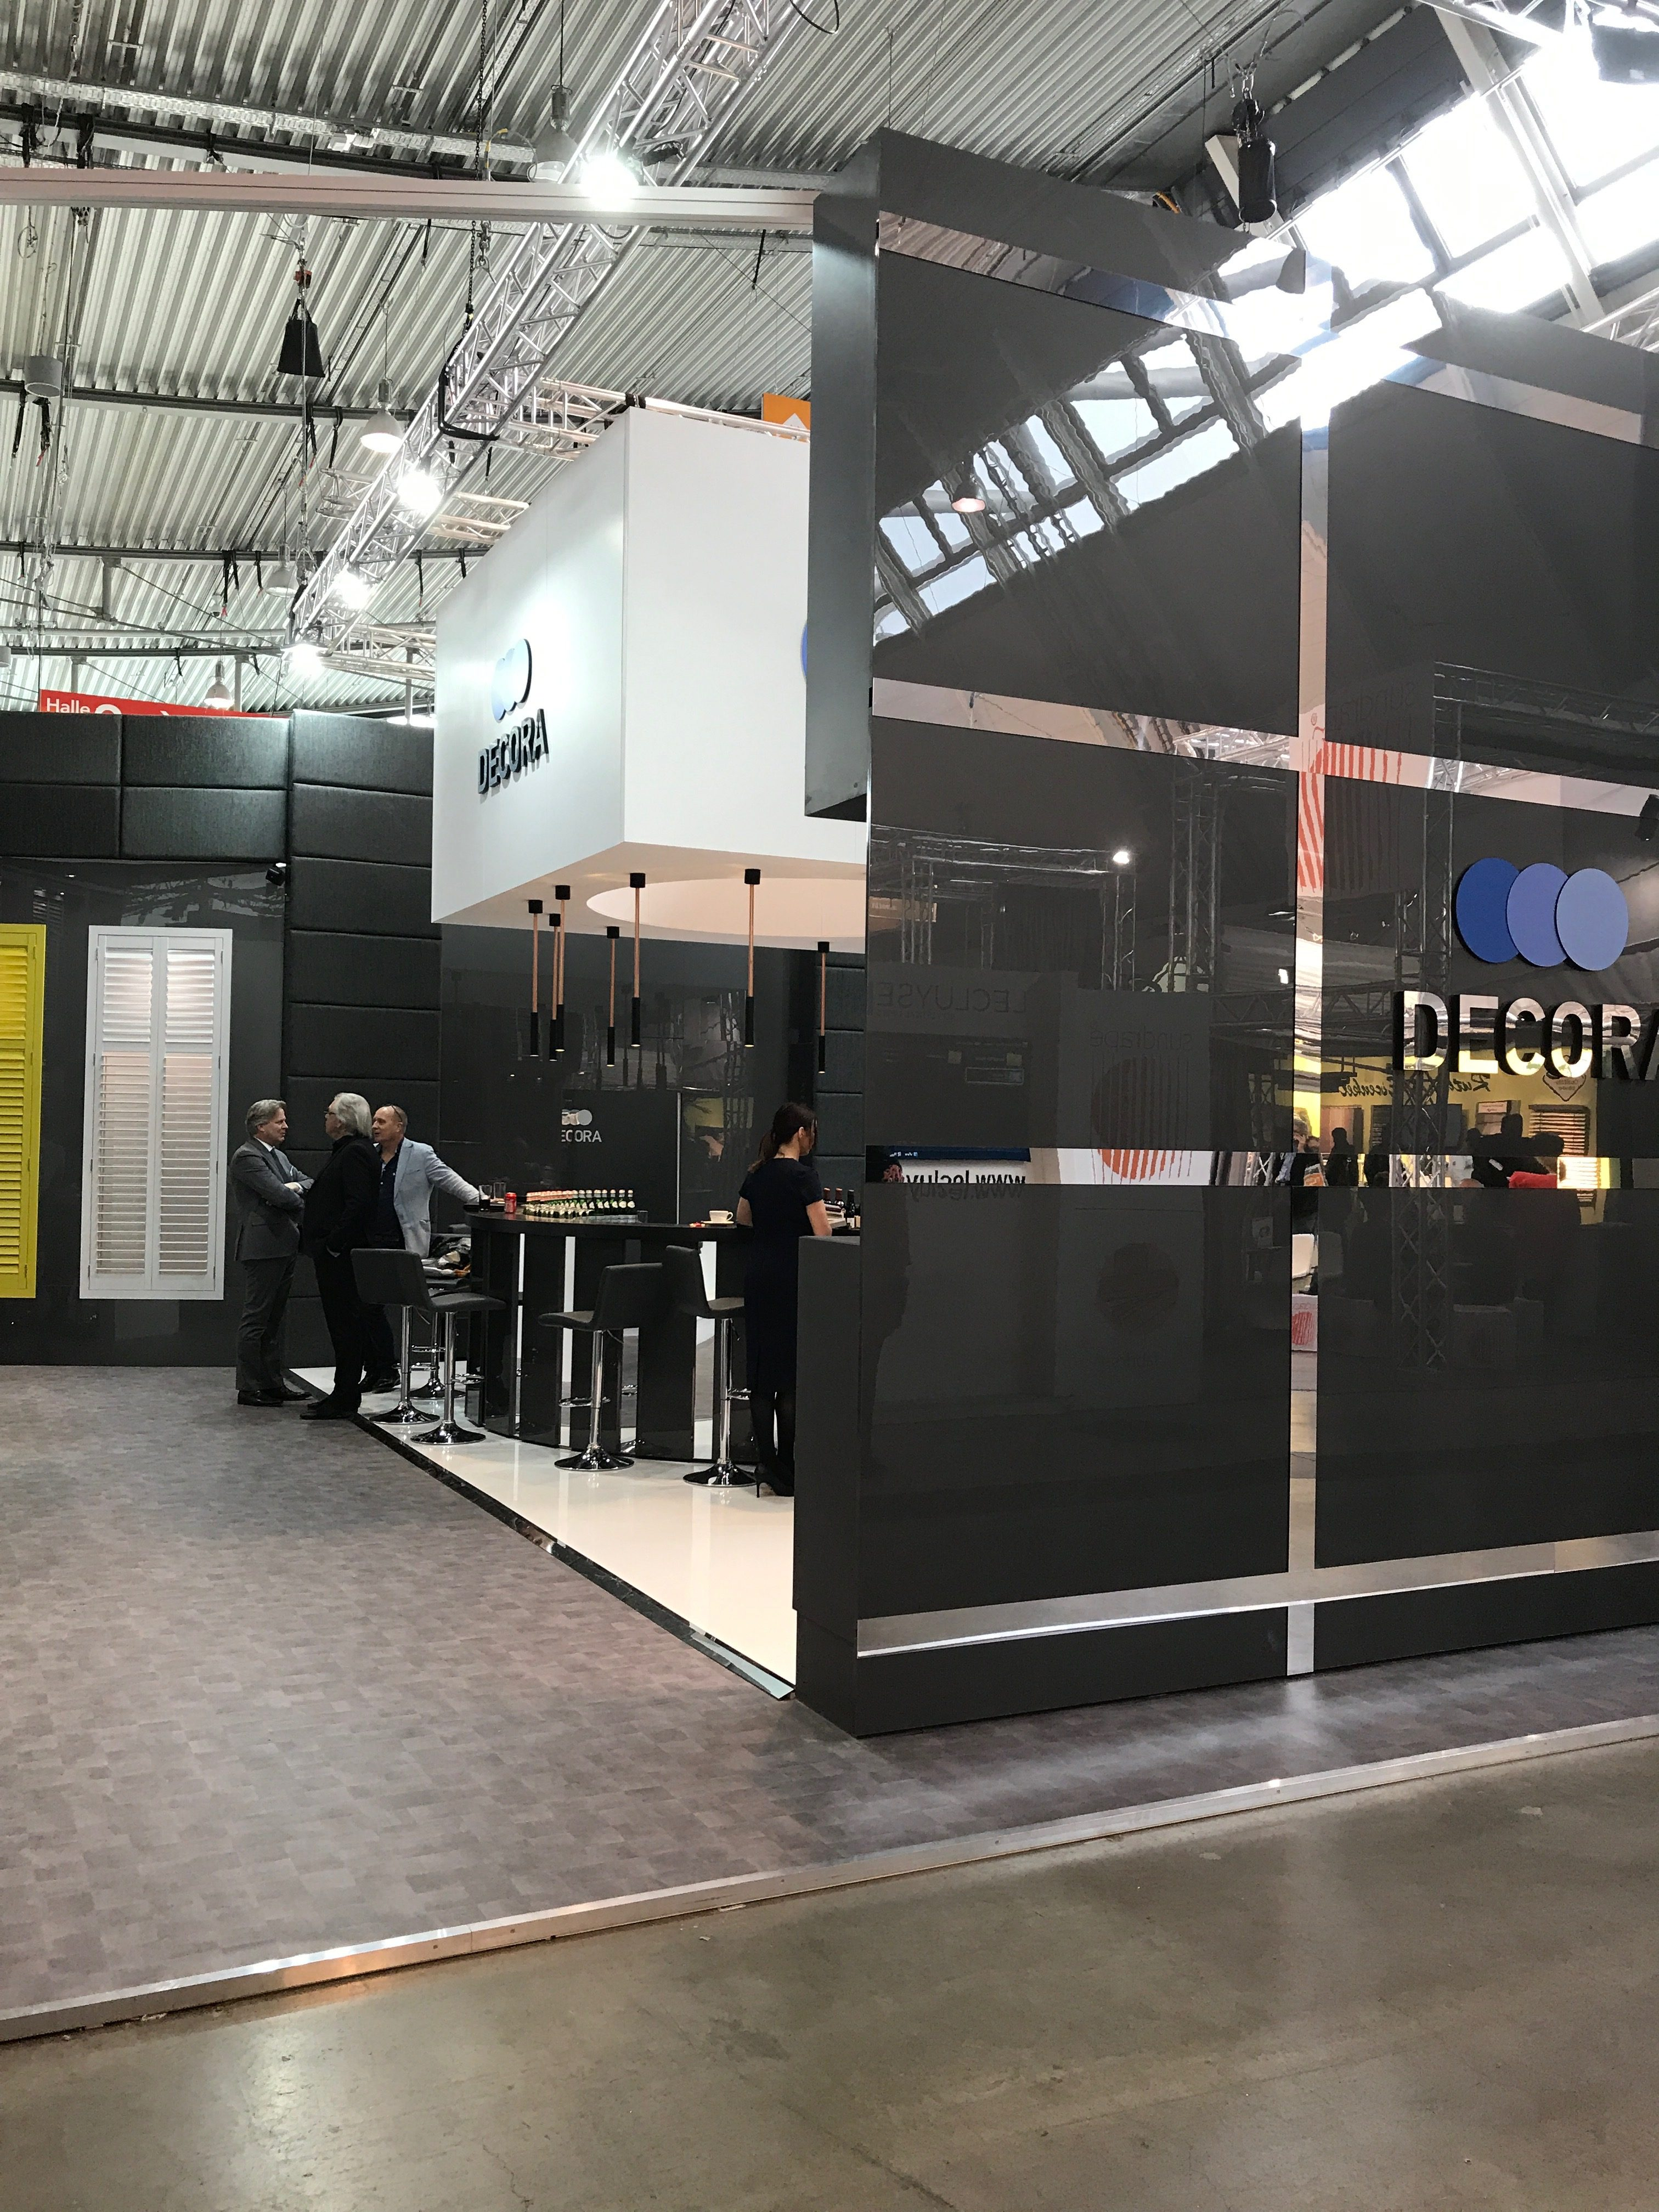 Exhibition Stand Design Decor : Exhibition stand munksjö interzum i xpo design